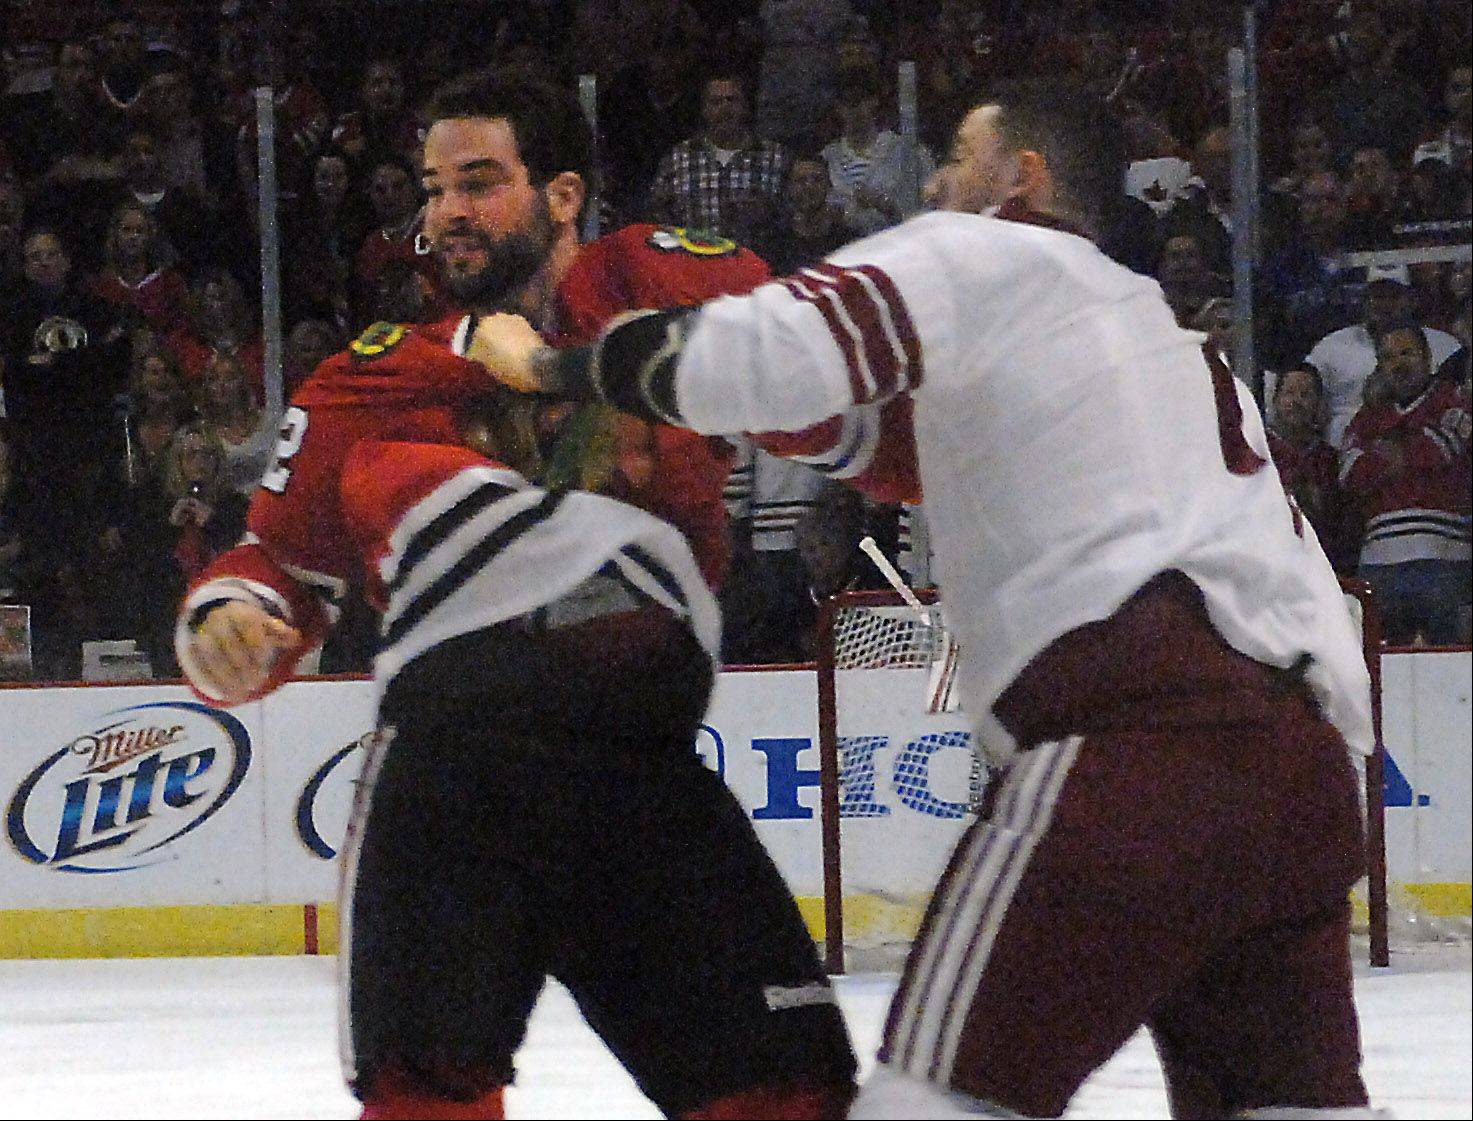 Chicago Blackhawks' left wing Brandon Bollig and Phoenix Coyotes left wing Paul Bissonnette mix it up.